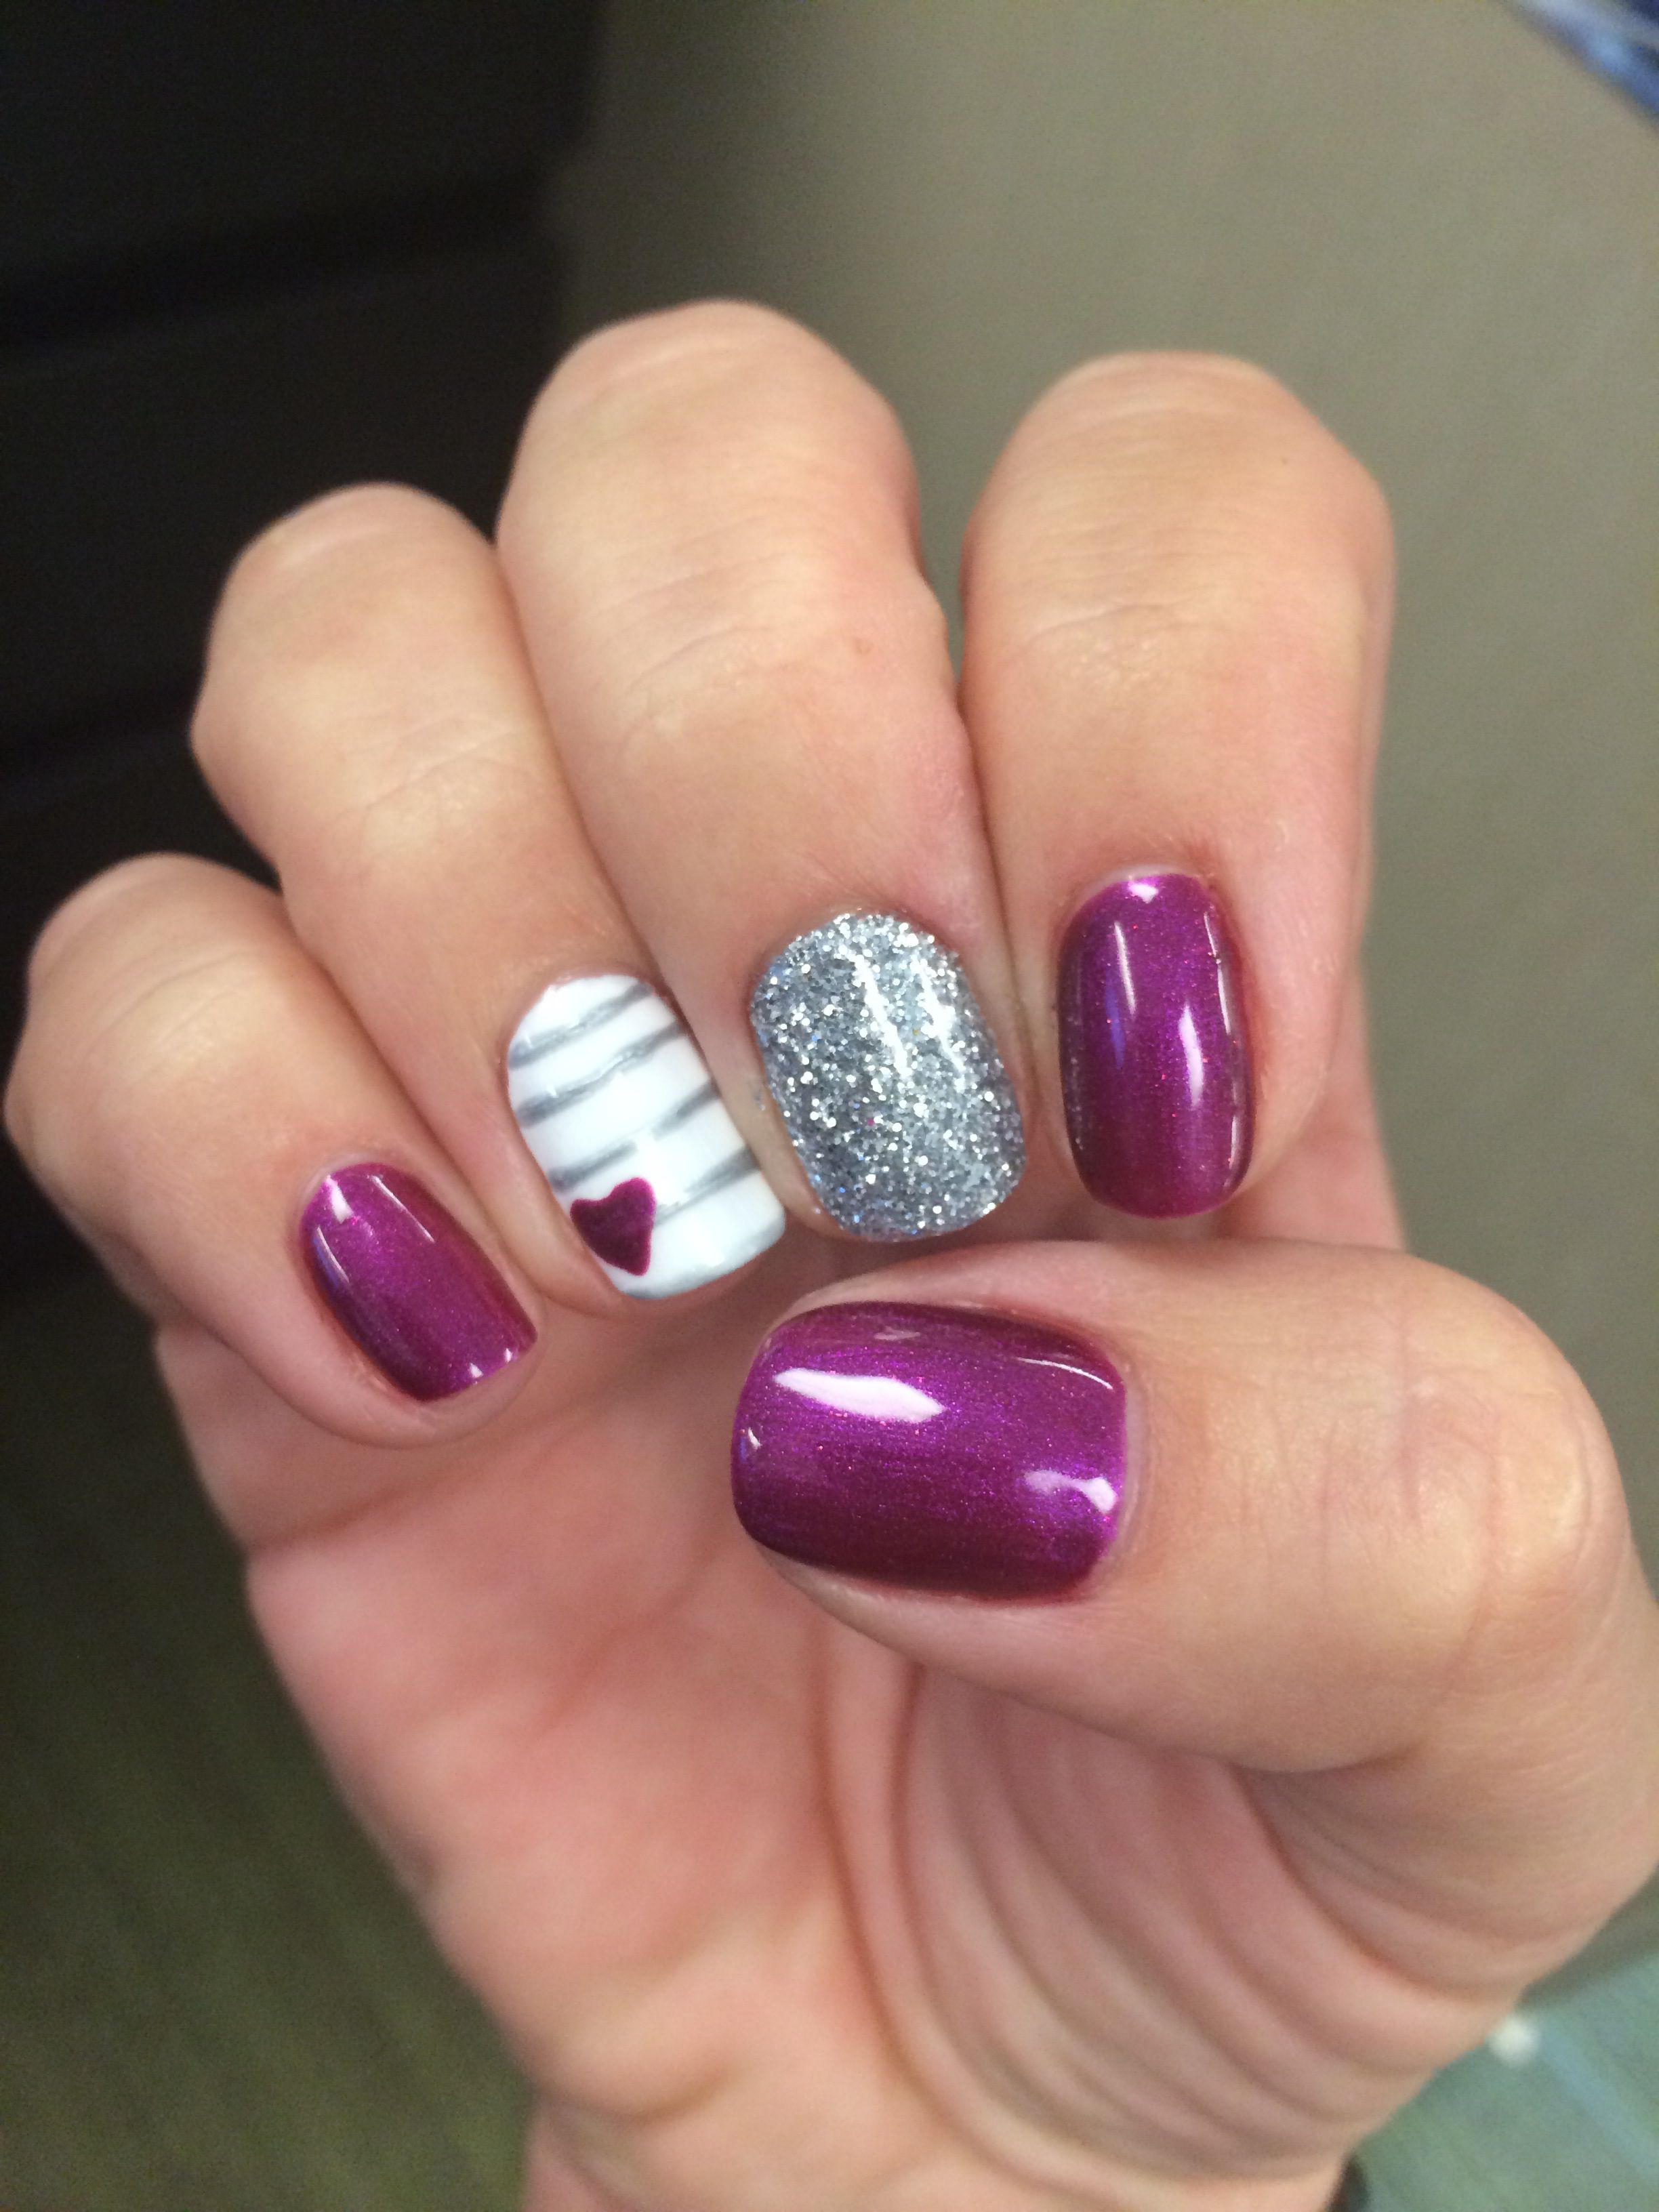 My beautiful nails! No chip Gelish! | My Style | Pinterest | Hair ...